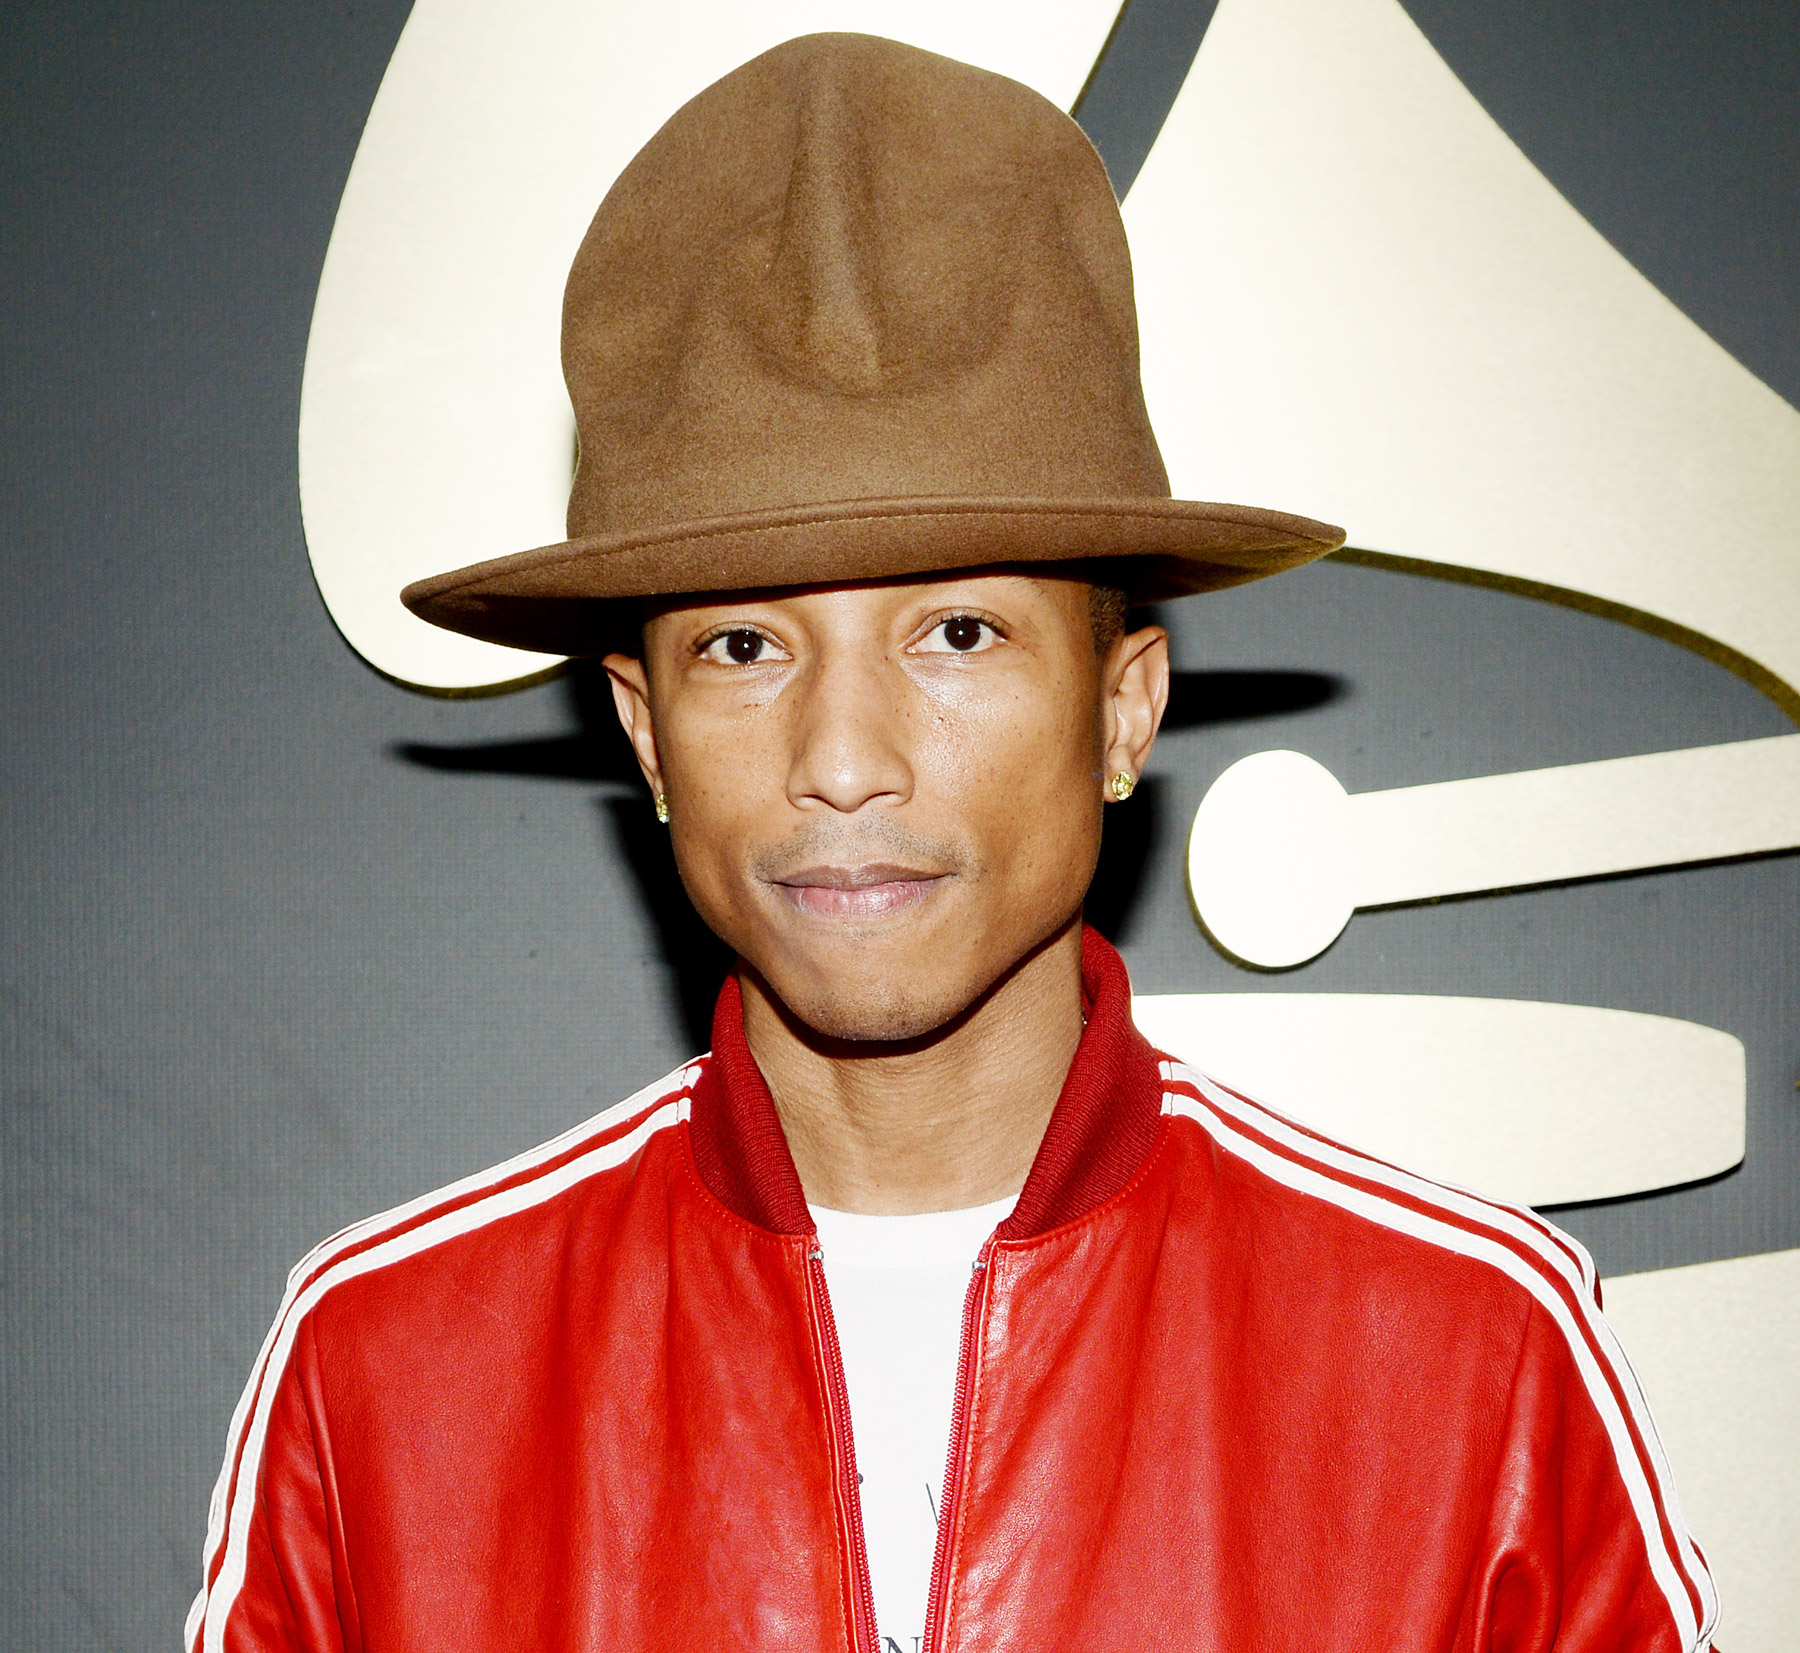 Singer Pharrell Williams  - age: 48